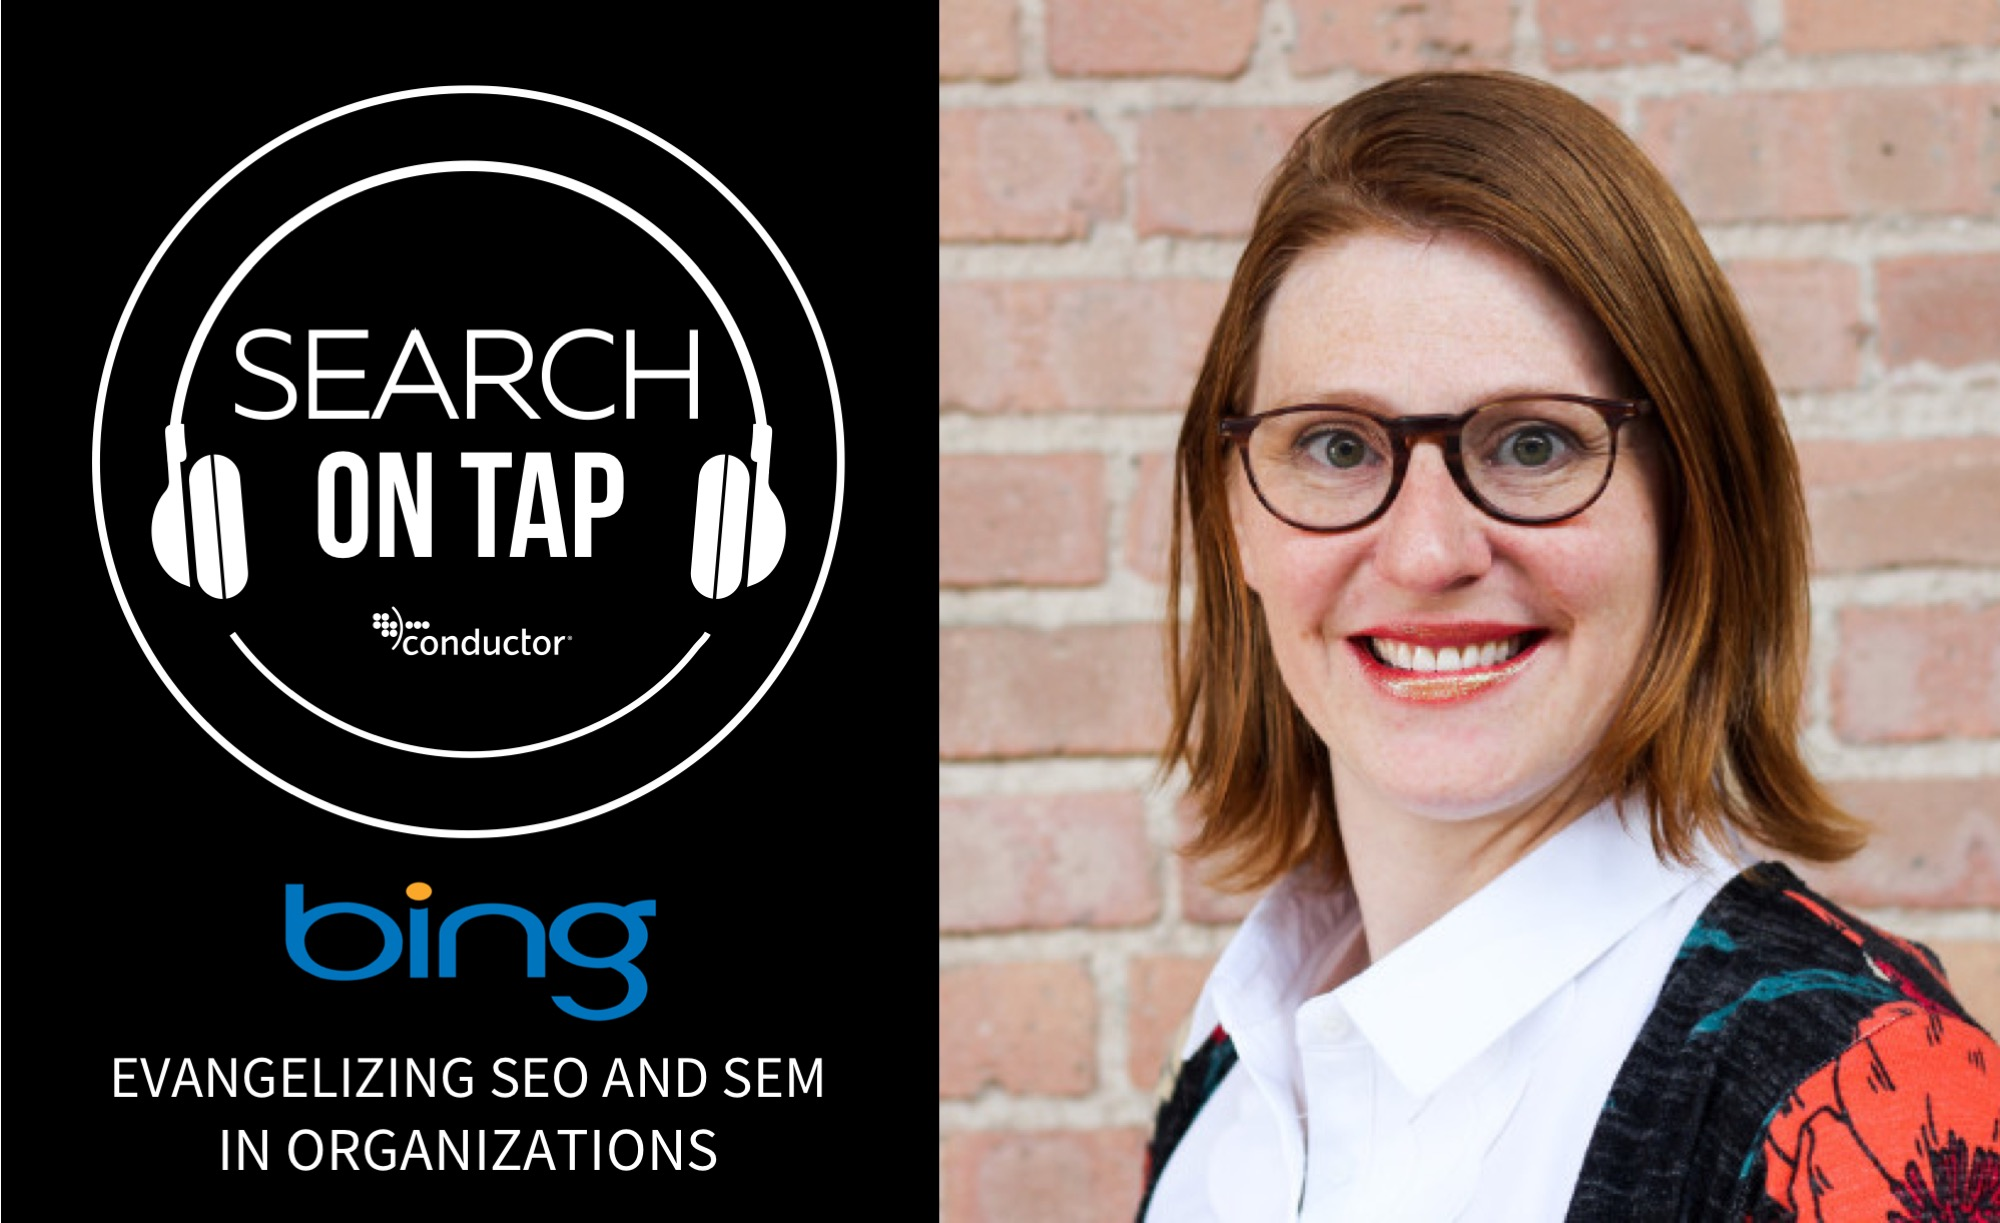 Christi Olson joins Search On Tap